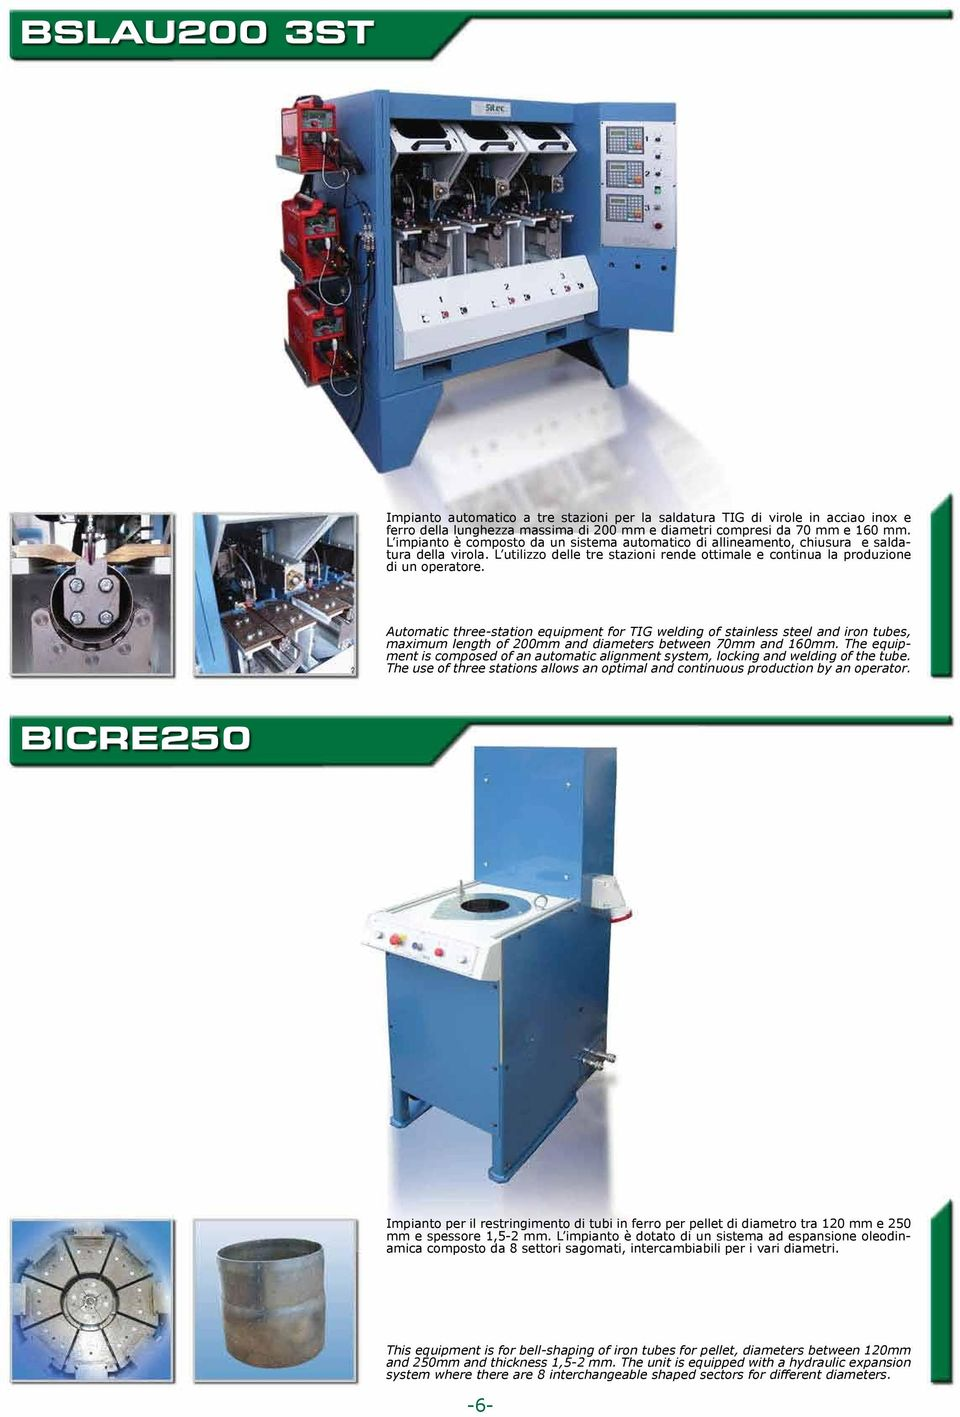 Automatic three-station equipment for TIG welding of stainless steel and iron tubes, maximum length of 200mm and diameters between 70mm and 160mm.